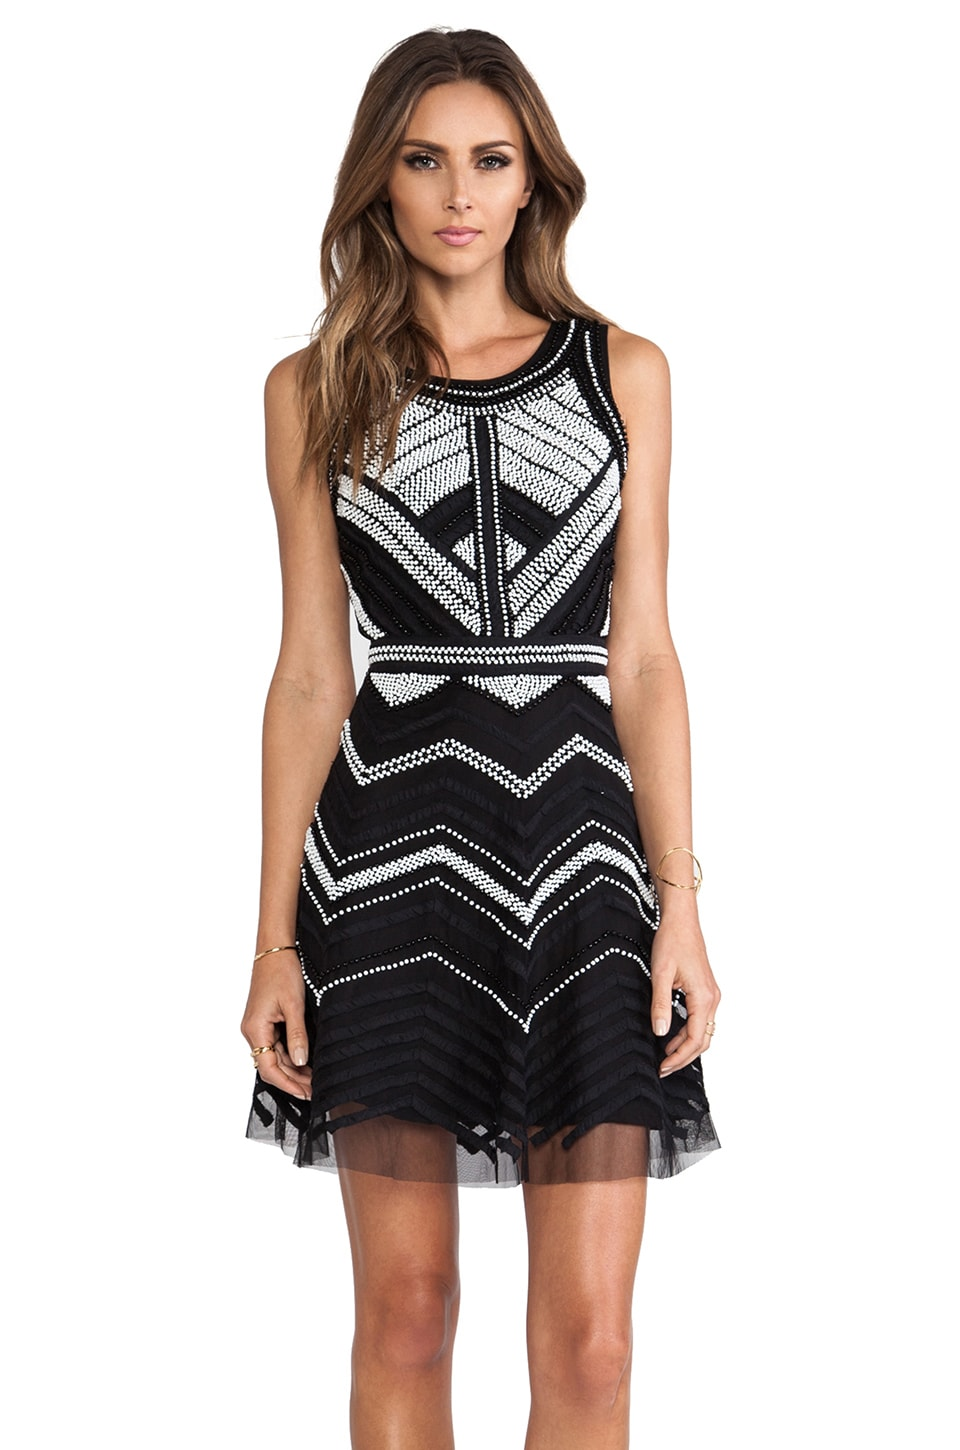 Parker Verda Dress in Black White